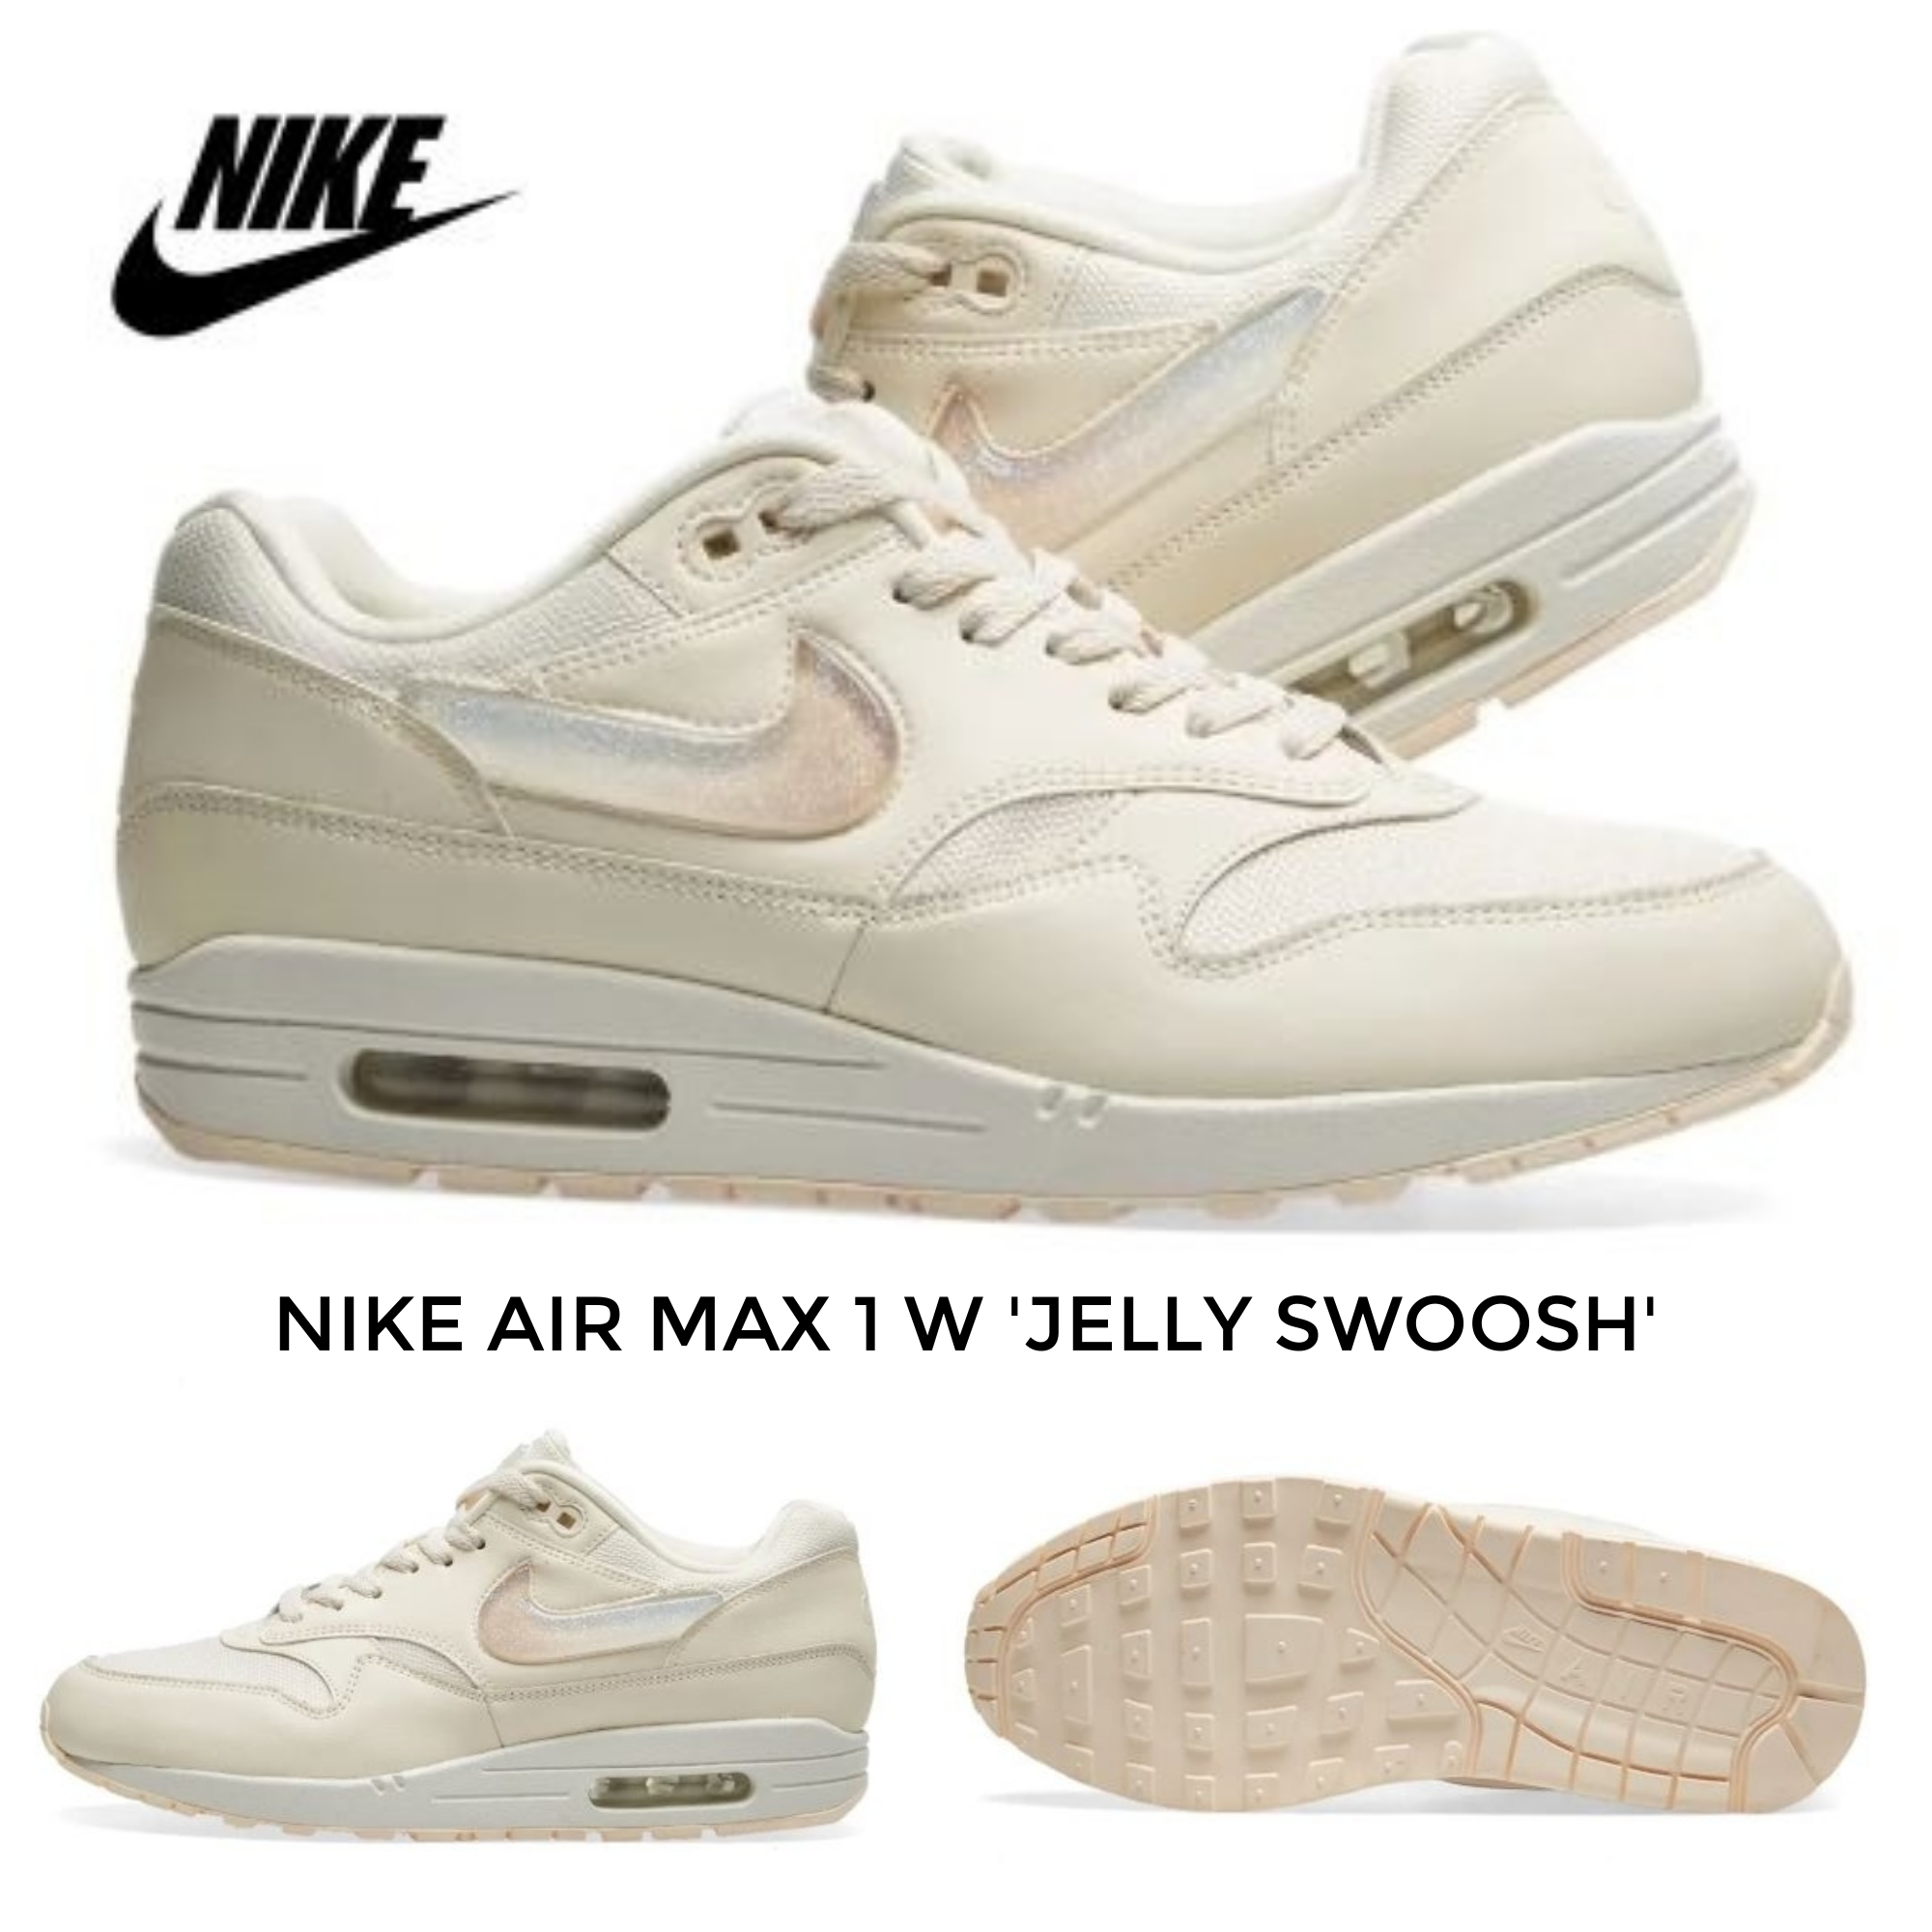 Nike AIR MAX 1 2019 SS Street Style Low Top Sneakers (AT5248 100)